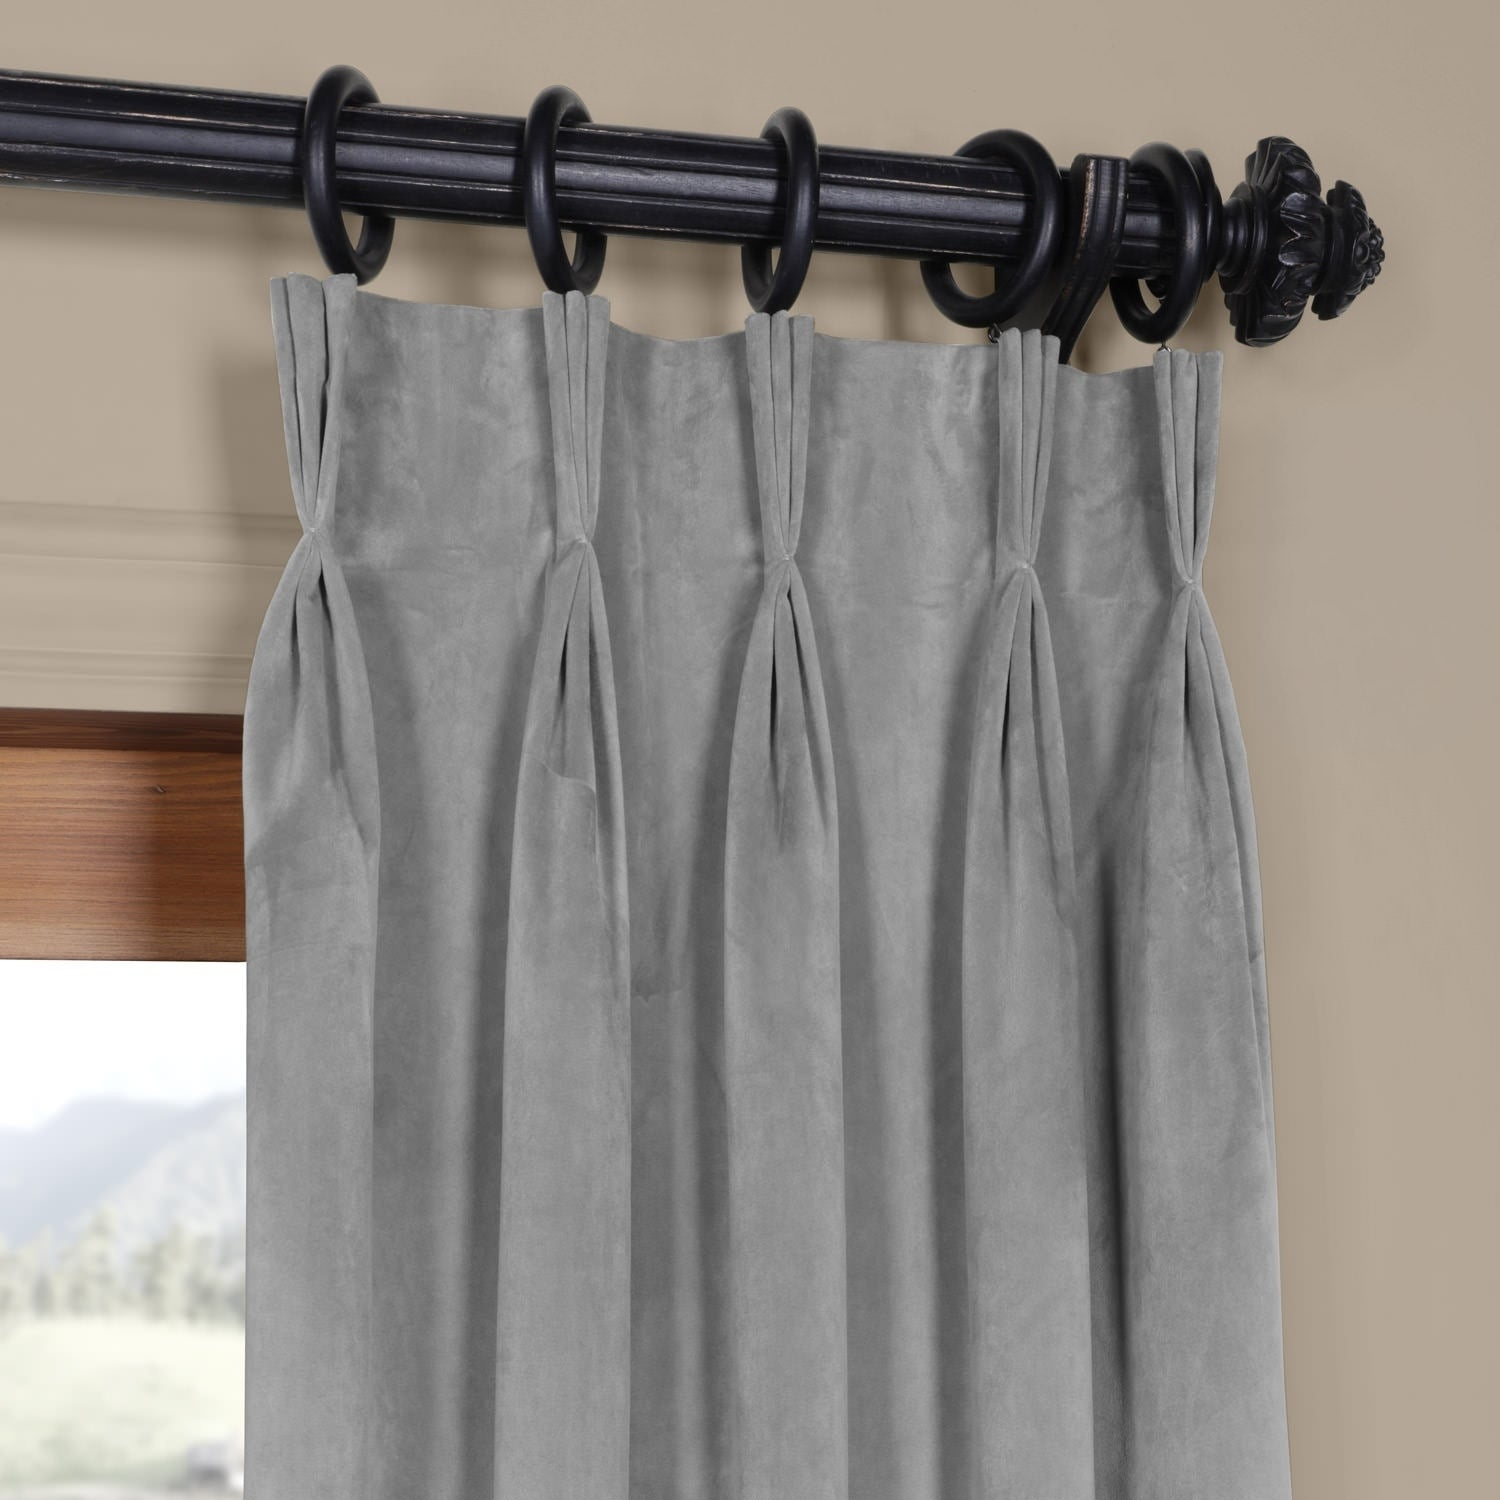 Exclusive Fabrics Signature Pinch Pleated Blackout Solid Velvet Curtain Panel With Regard To Signature Pinch Pleated Blackout Solid Velvet Curtain Panels (View 17 of 36)